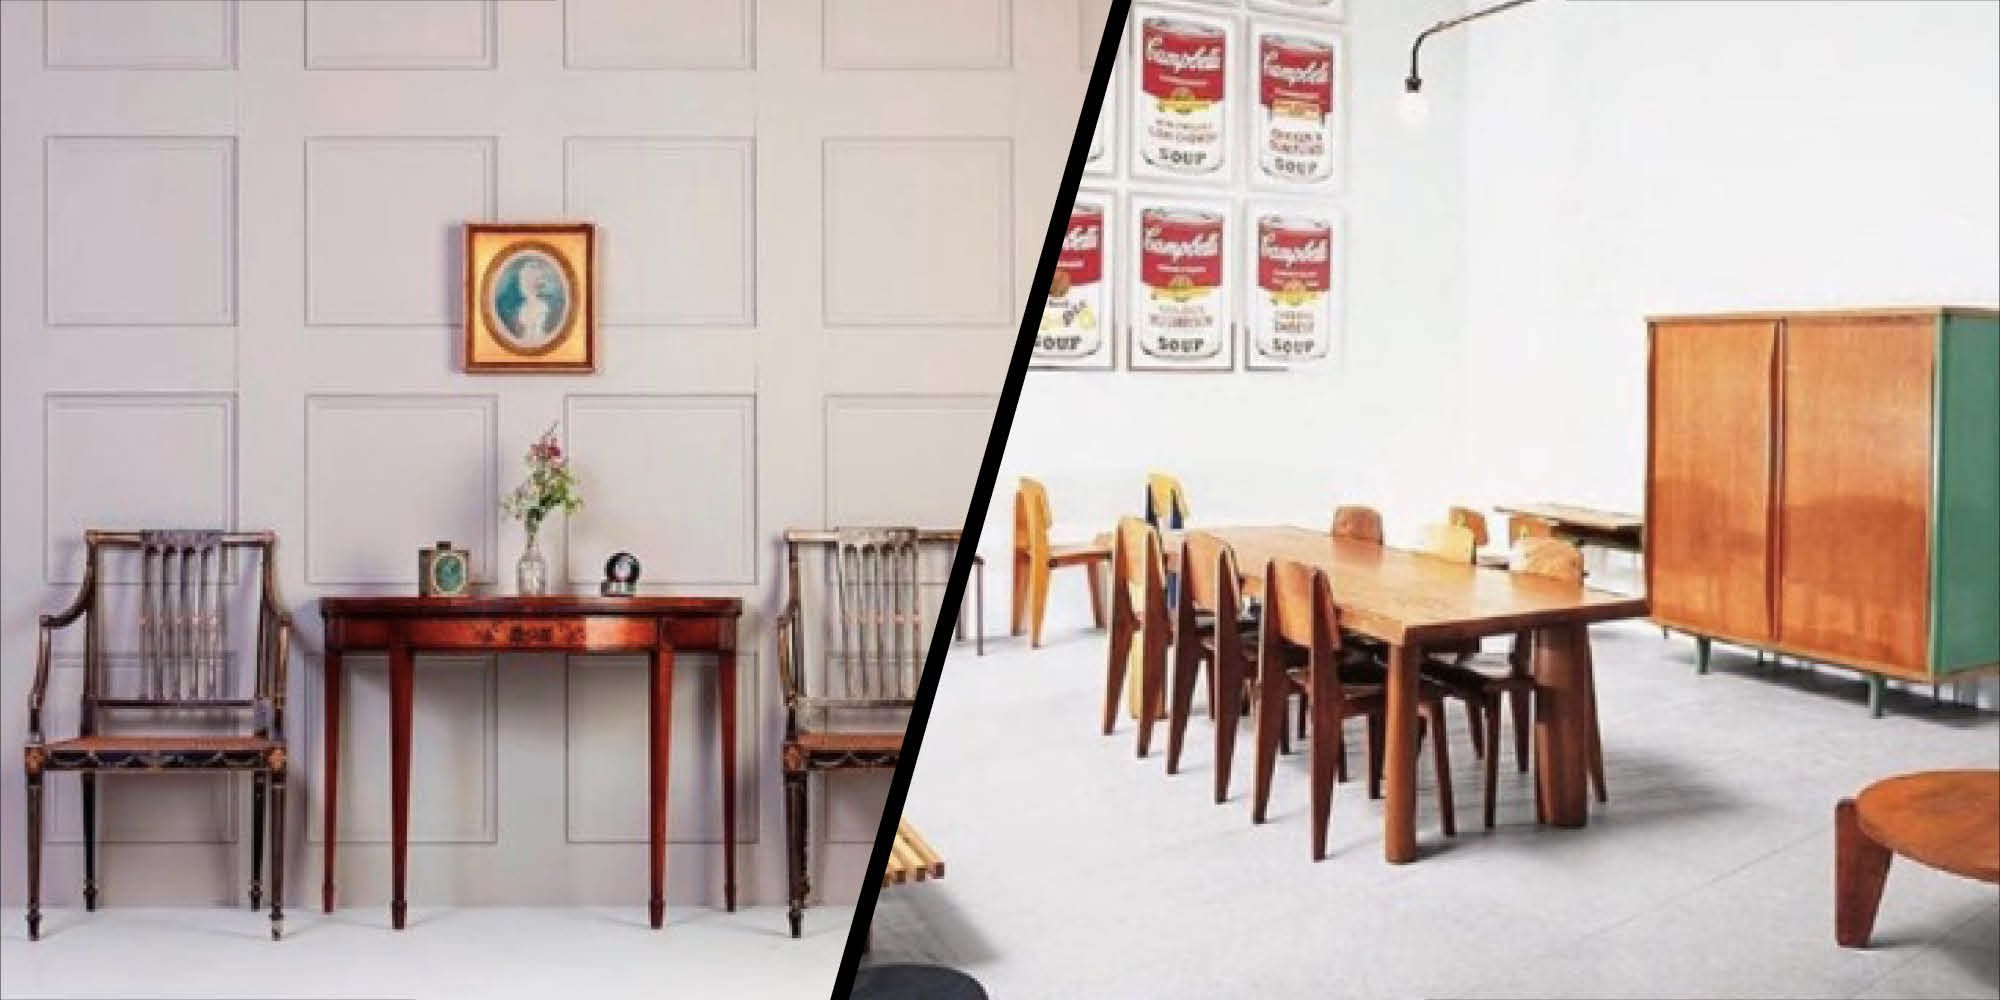 Antique furniture is becoming increasingly popular with millennials